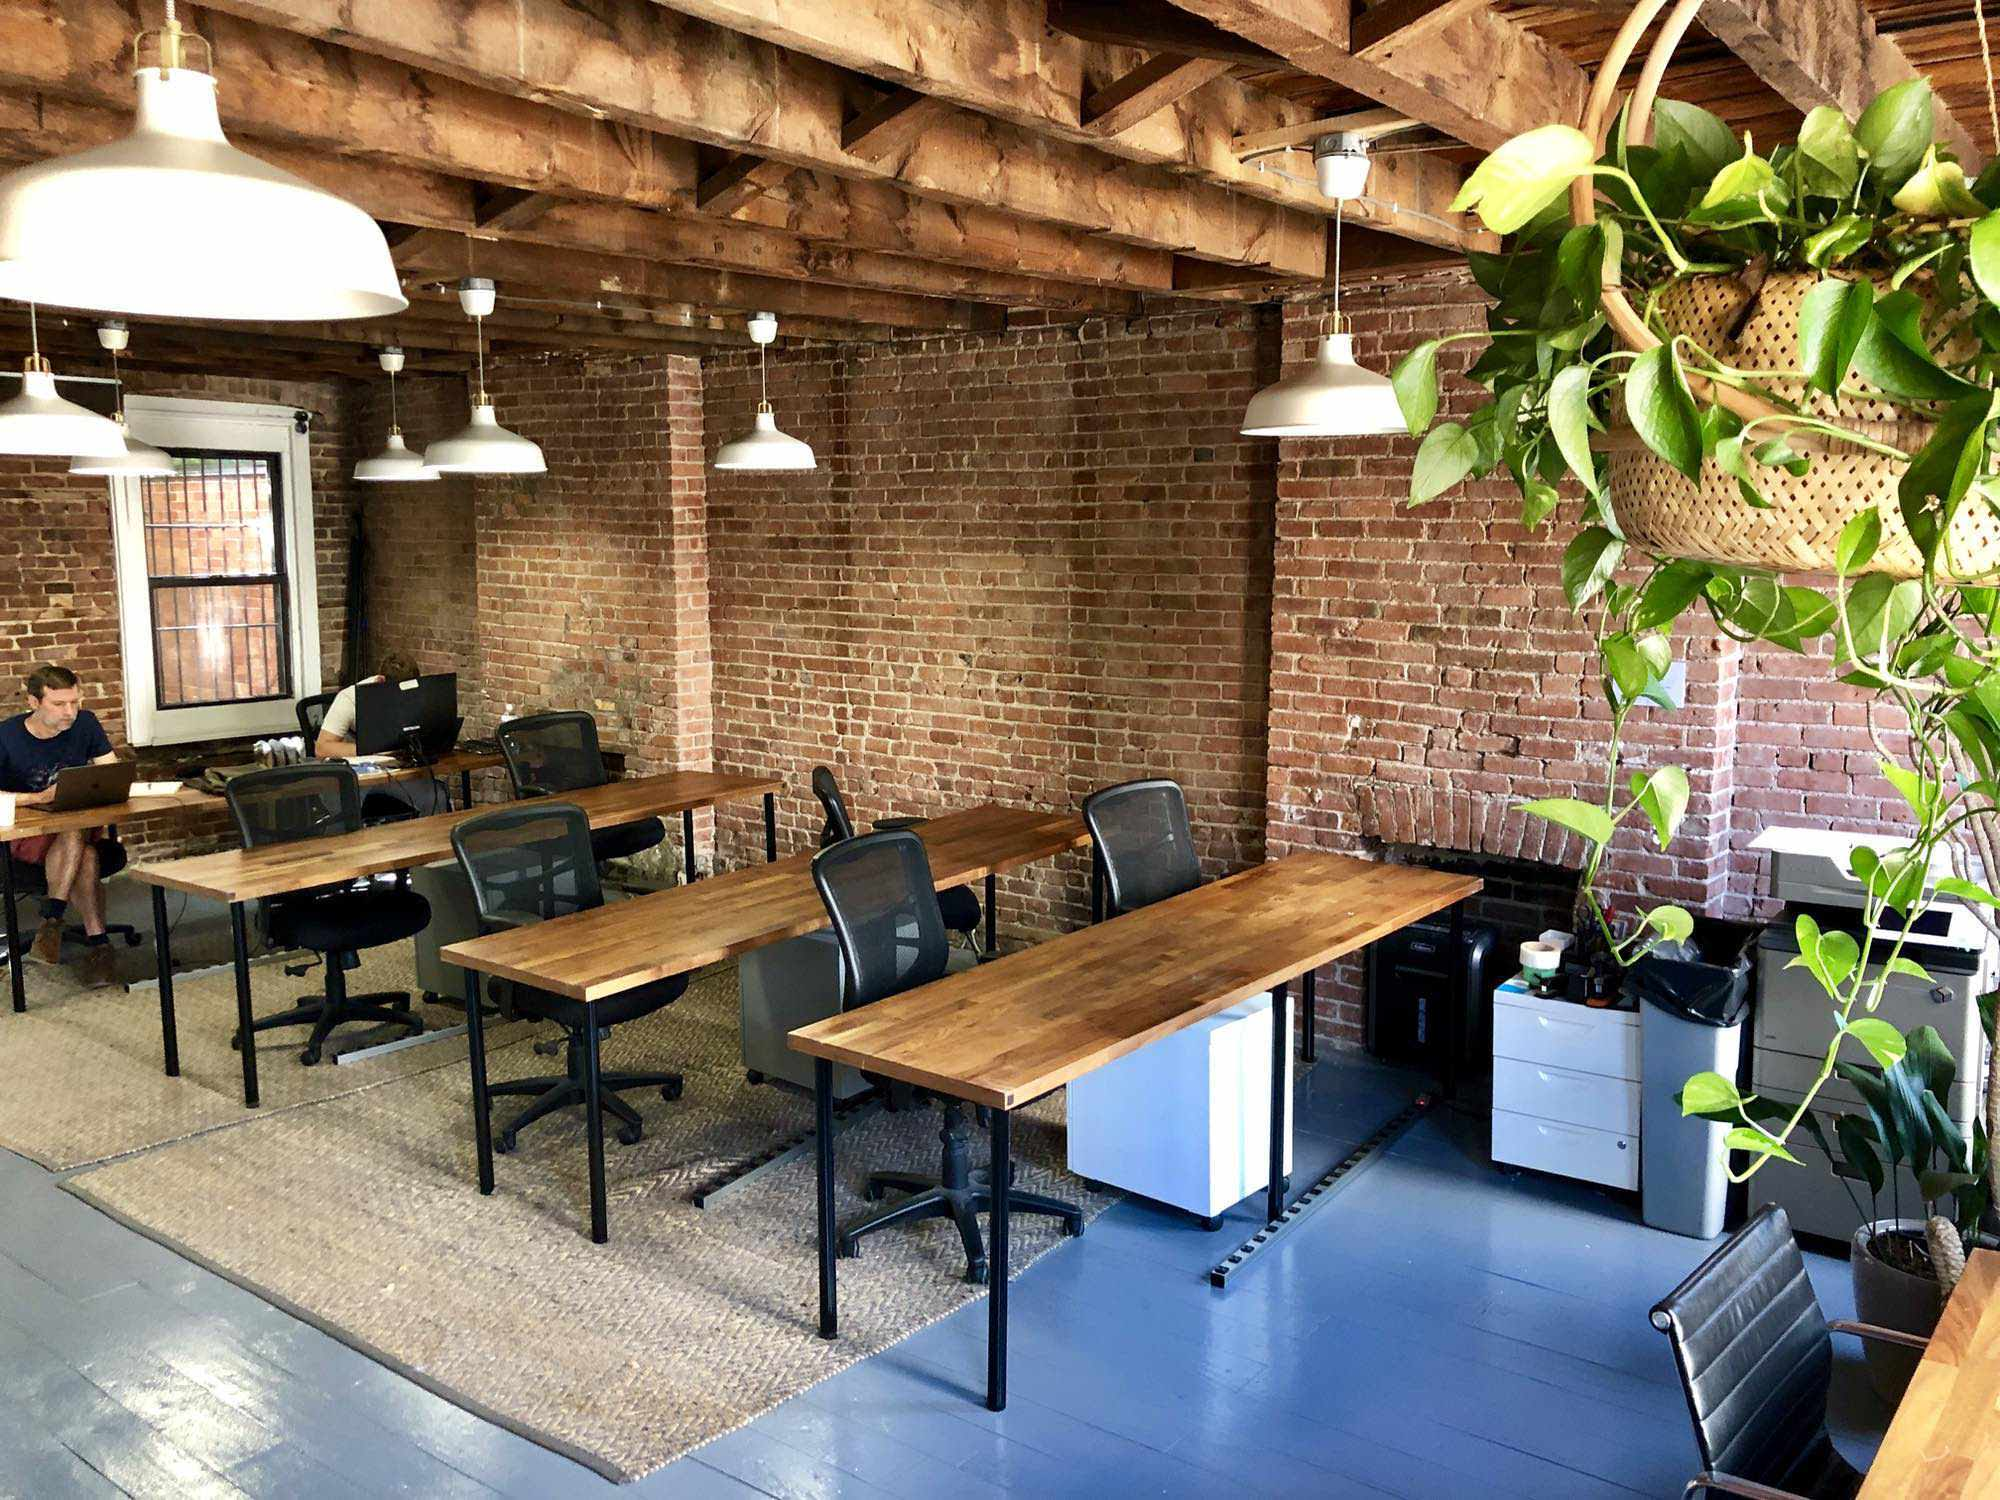 The Most Affordable Office Space Uptown - Rent a desk, office or studio and enjoy our collaborative's support and resources with no long-term commitment and no fuss. Check Out Pricing & Get StartedJust need a spot for a day or a week? We got you. Buy a Day Pass or Week Pass